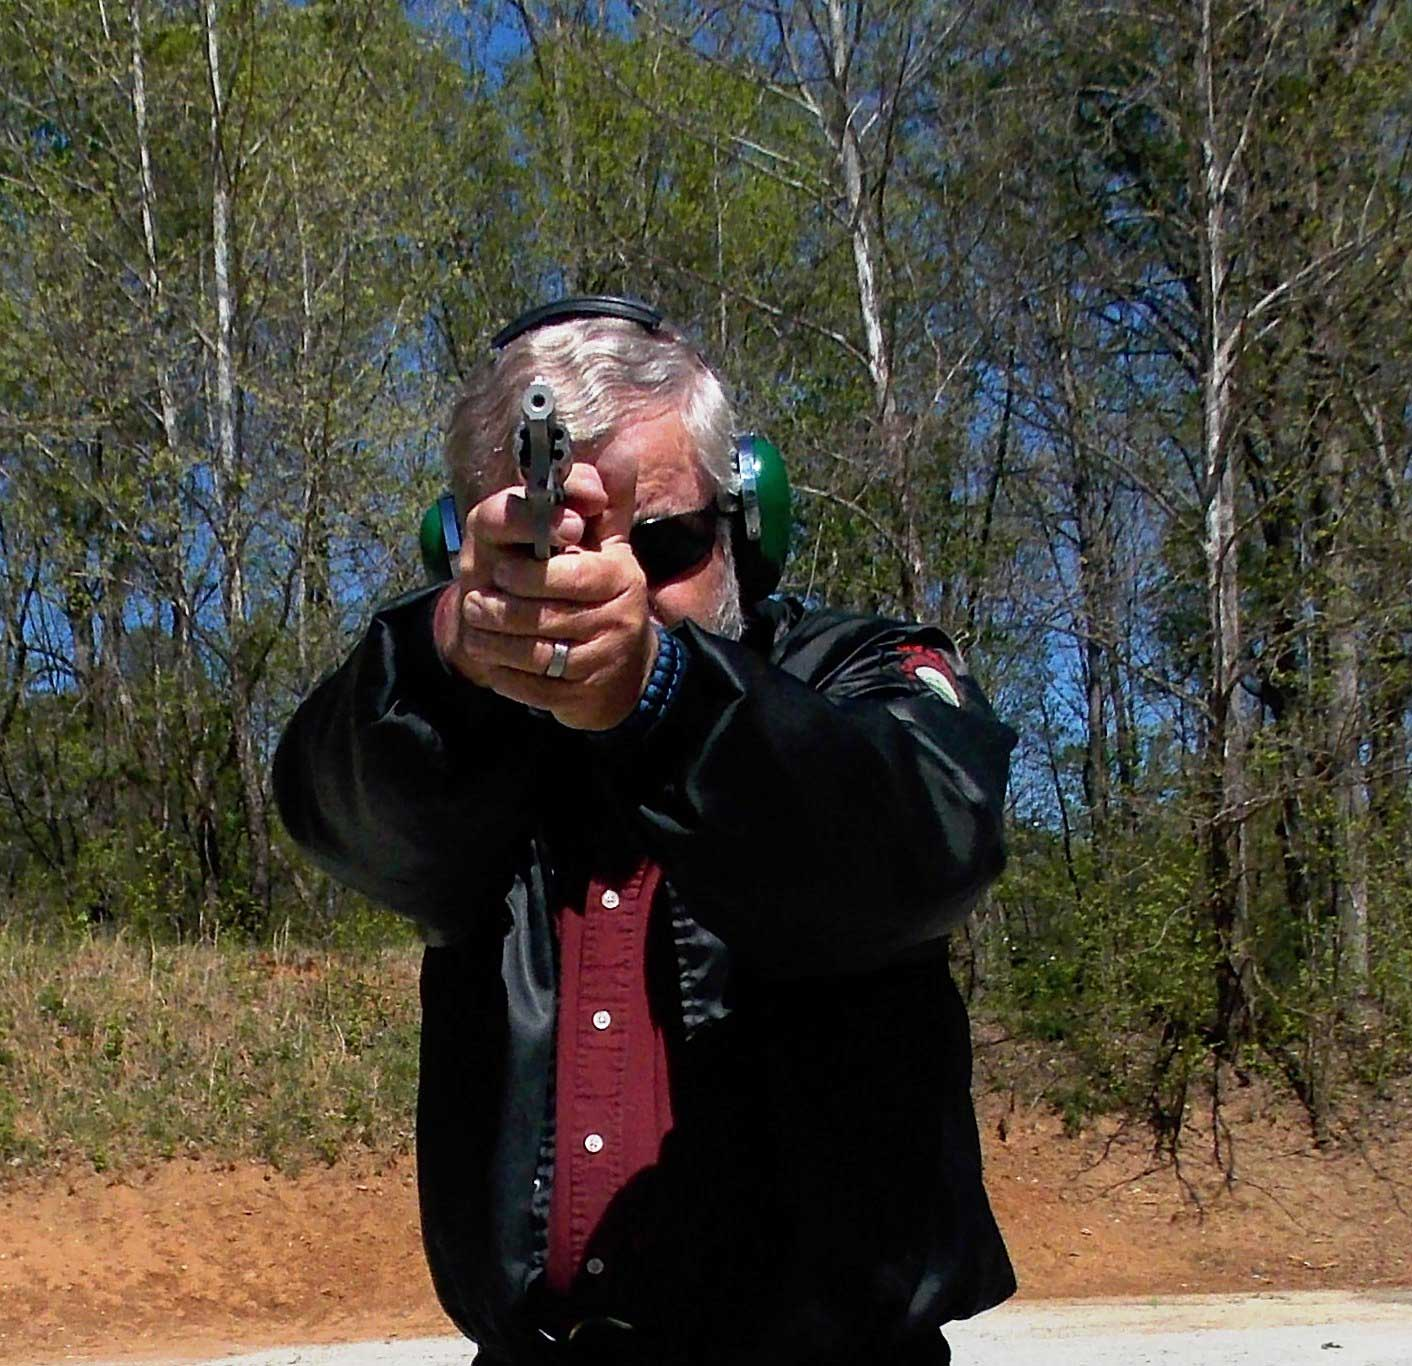 Bob Campbell shooting a Charter Arms Pathfinder two handed.